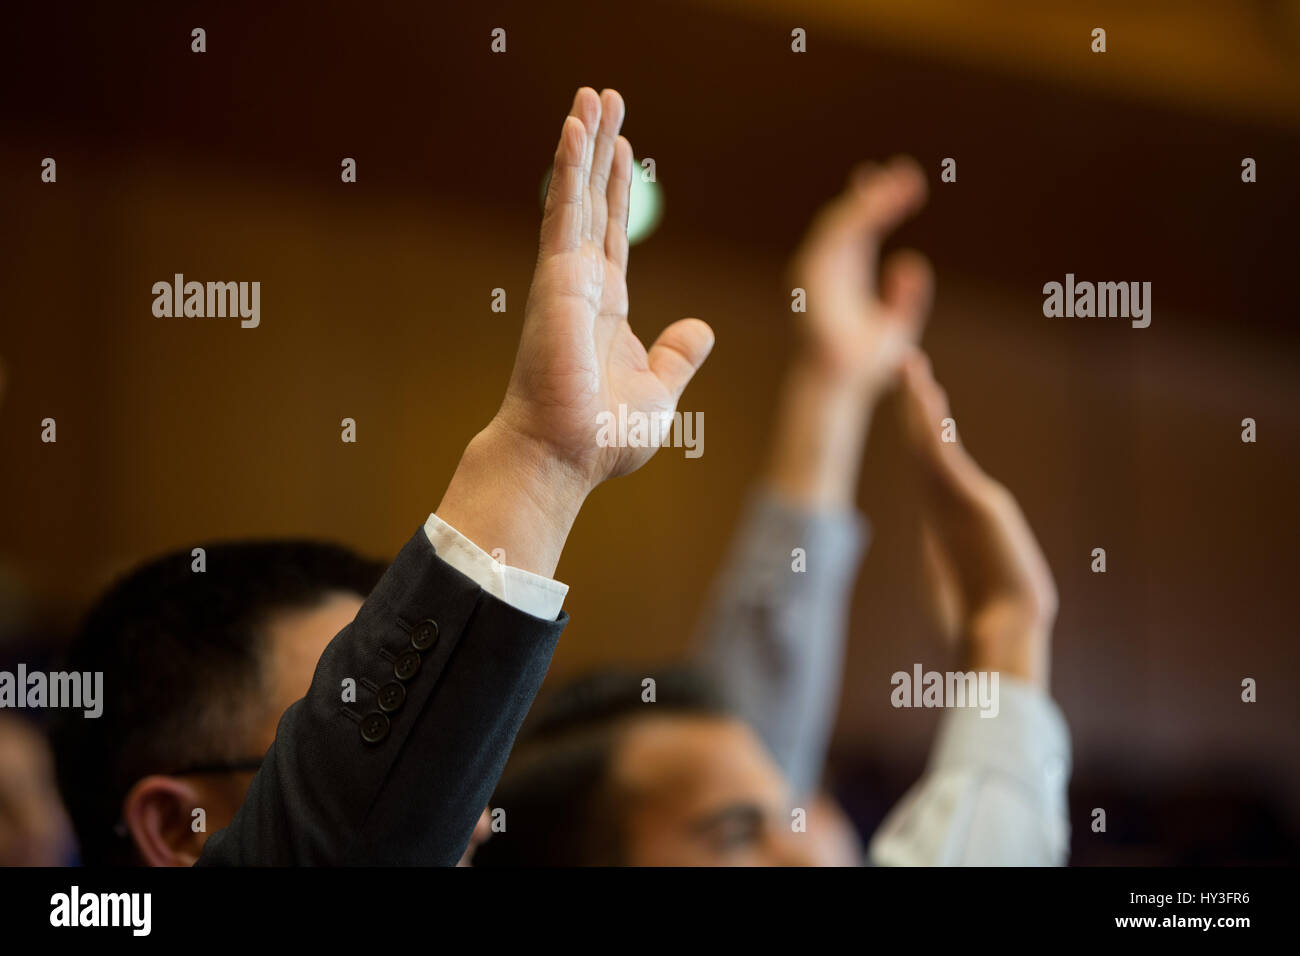 Business executives actively participating in conference center - Stock Image